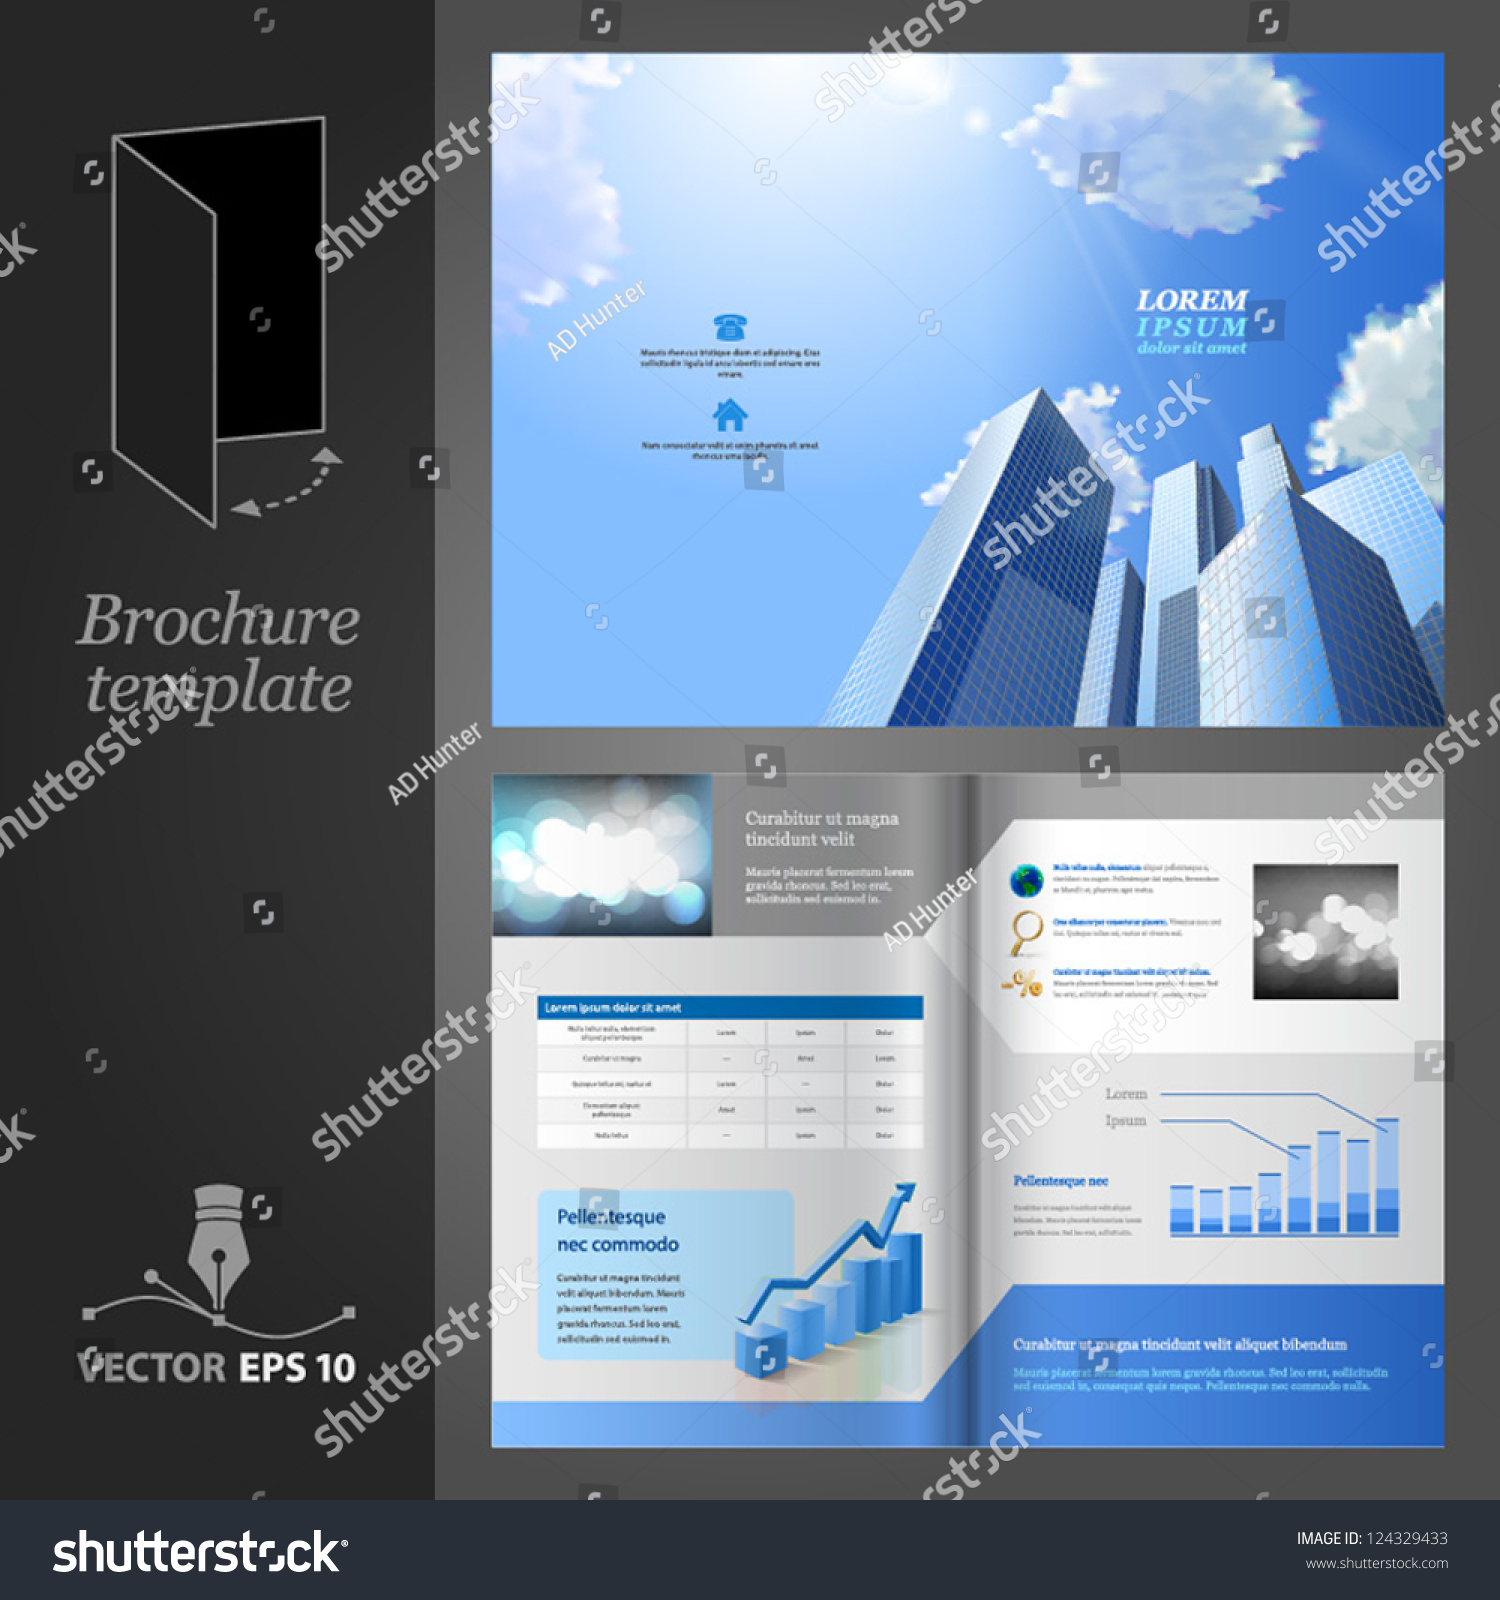 Brochure template design modern business center stock for Modern brochure template